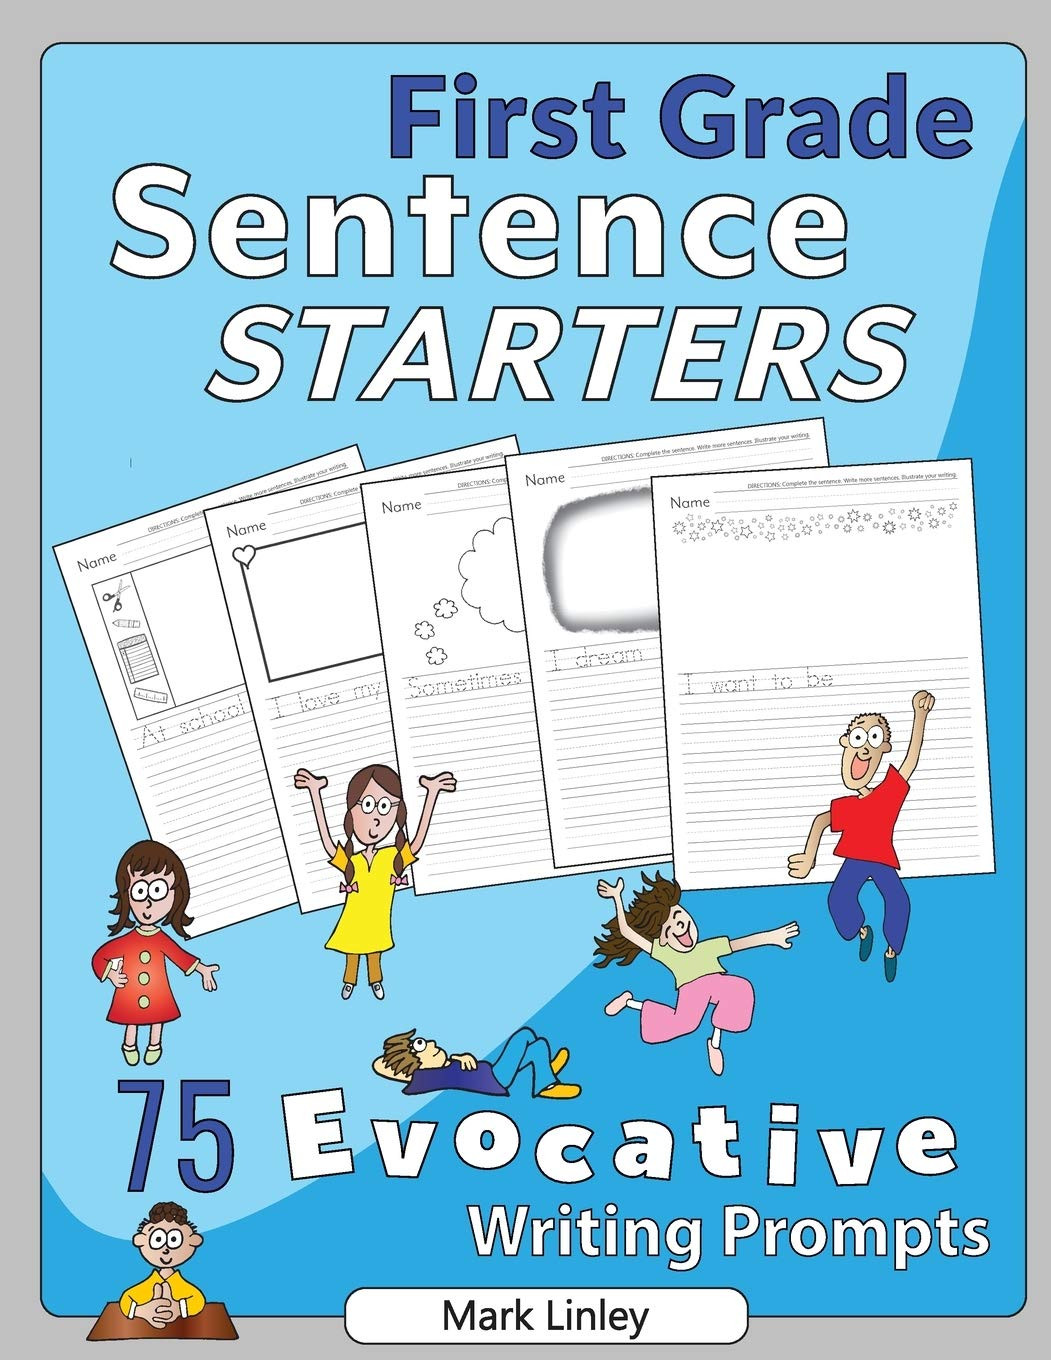 1st Grade Sentence Starters Buy First Grade Sentence Starters 75 Evocative Writing